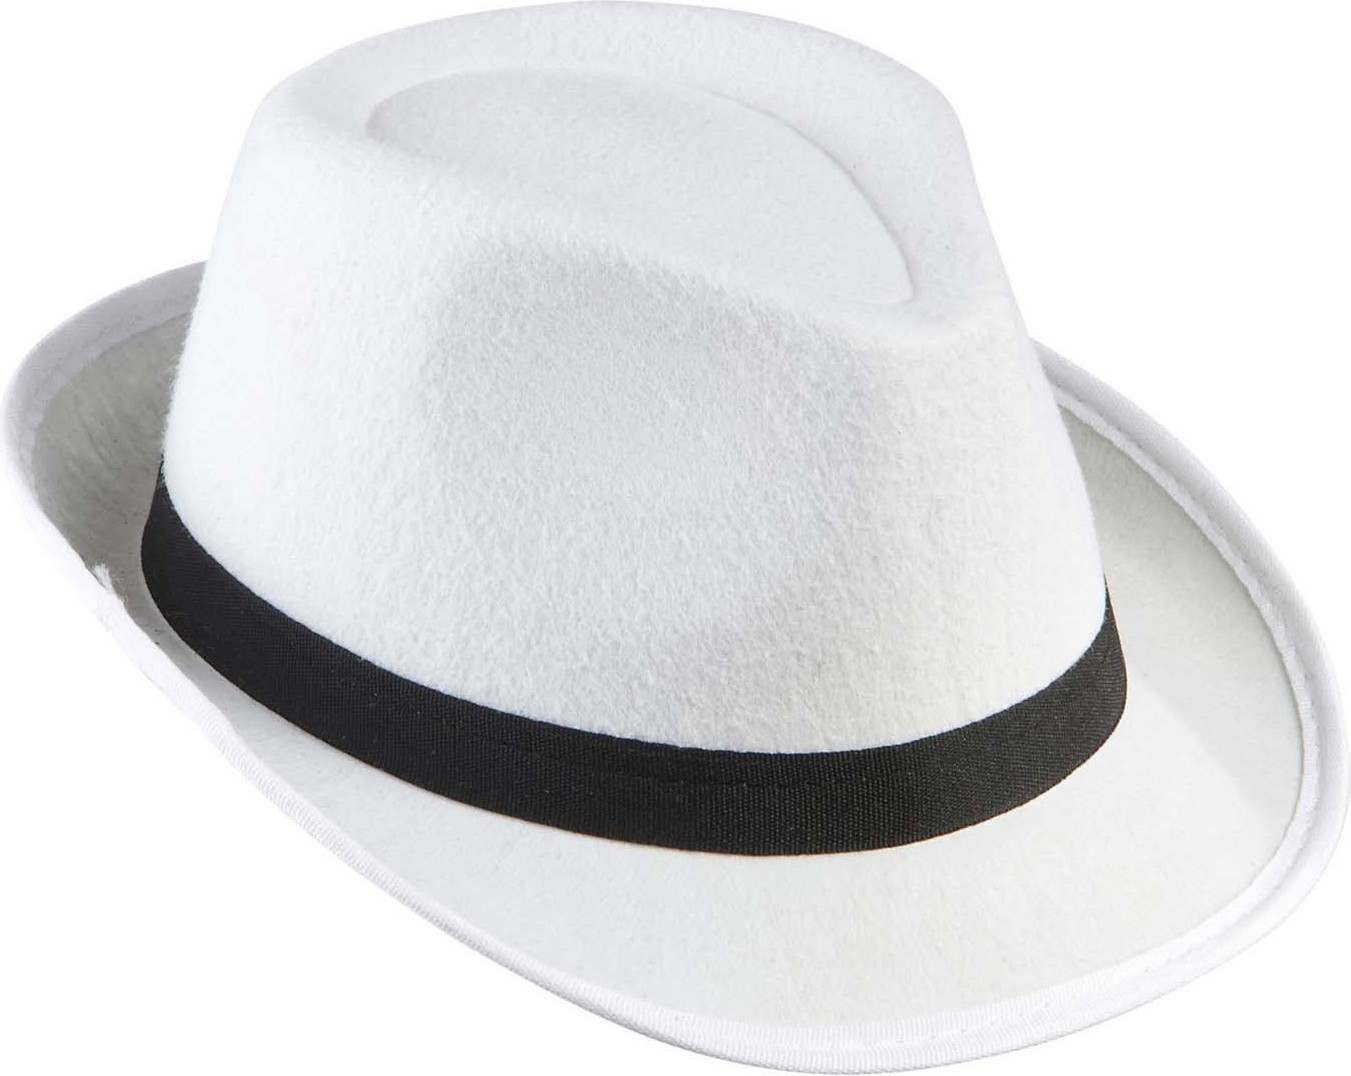 Adult Unisex Gangster Hat Felt White W/Black Band Hats - (Black)